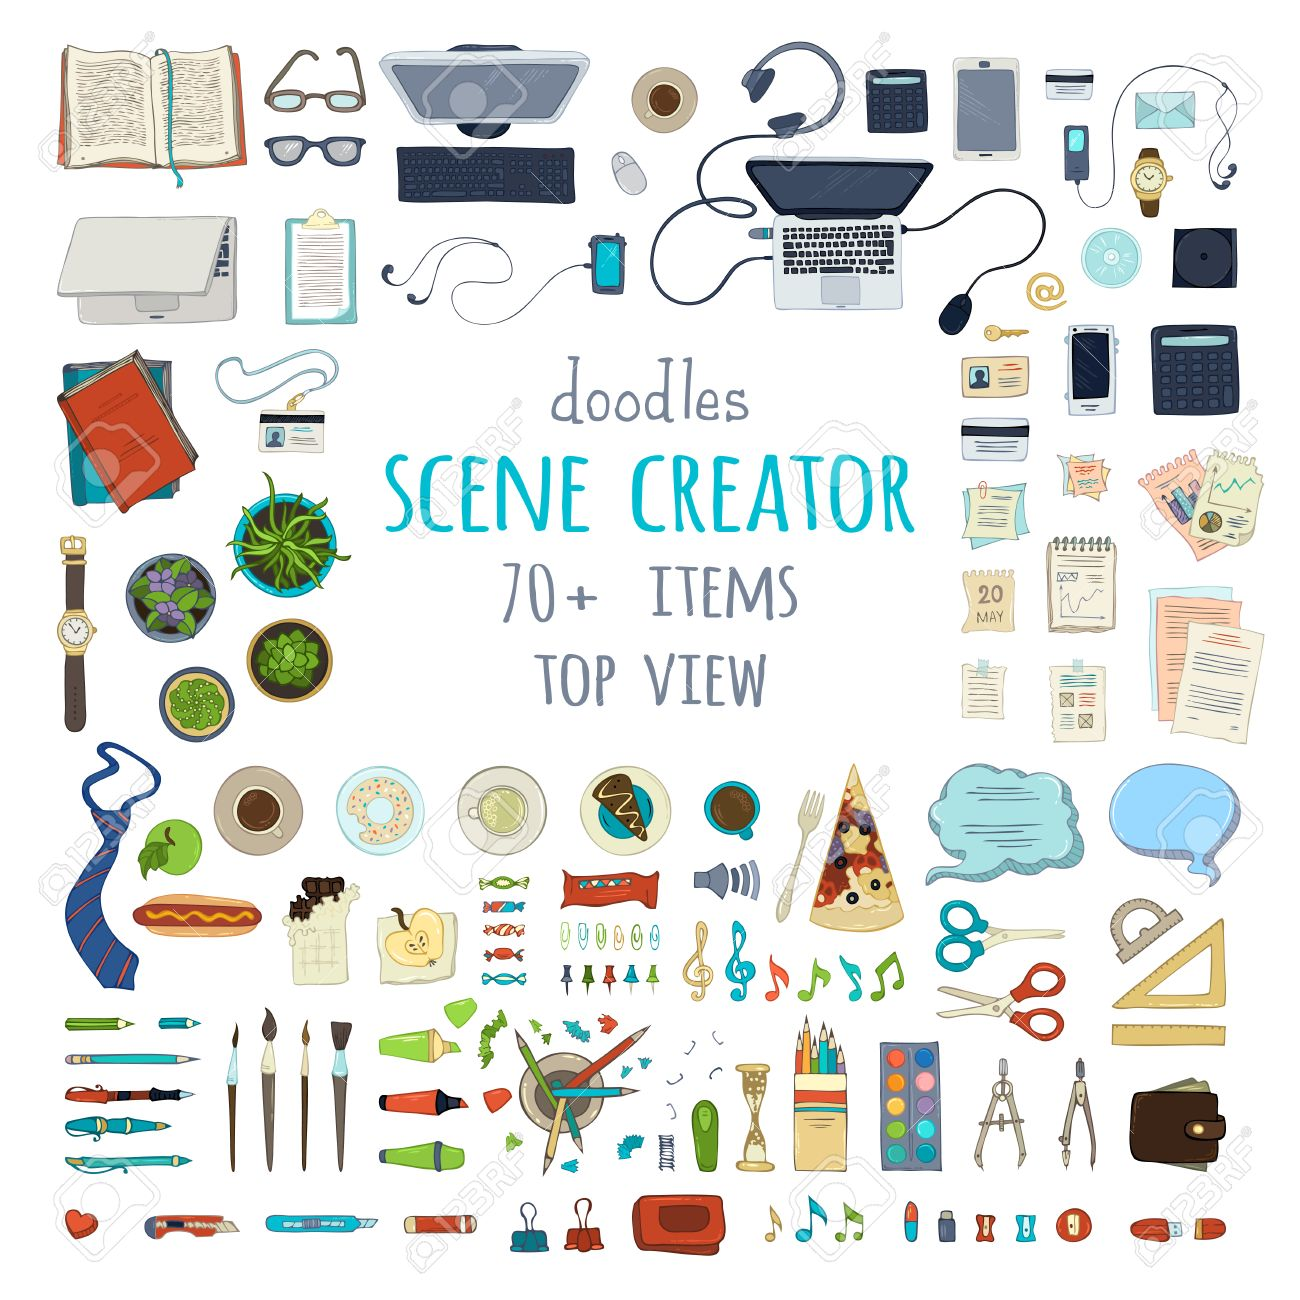 scene creator hand drawn gadgets and office supplies isolated